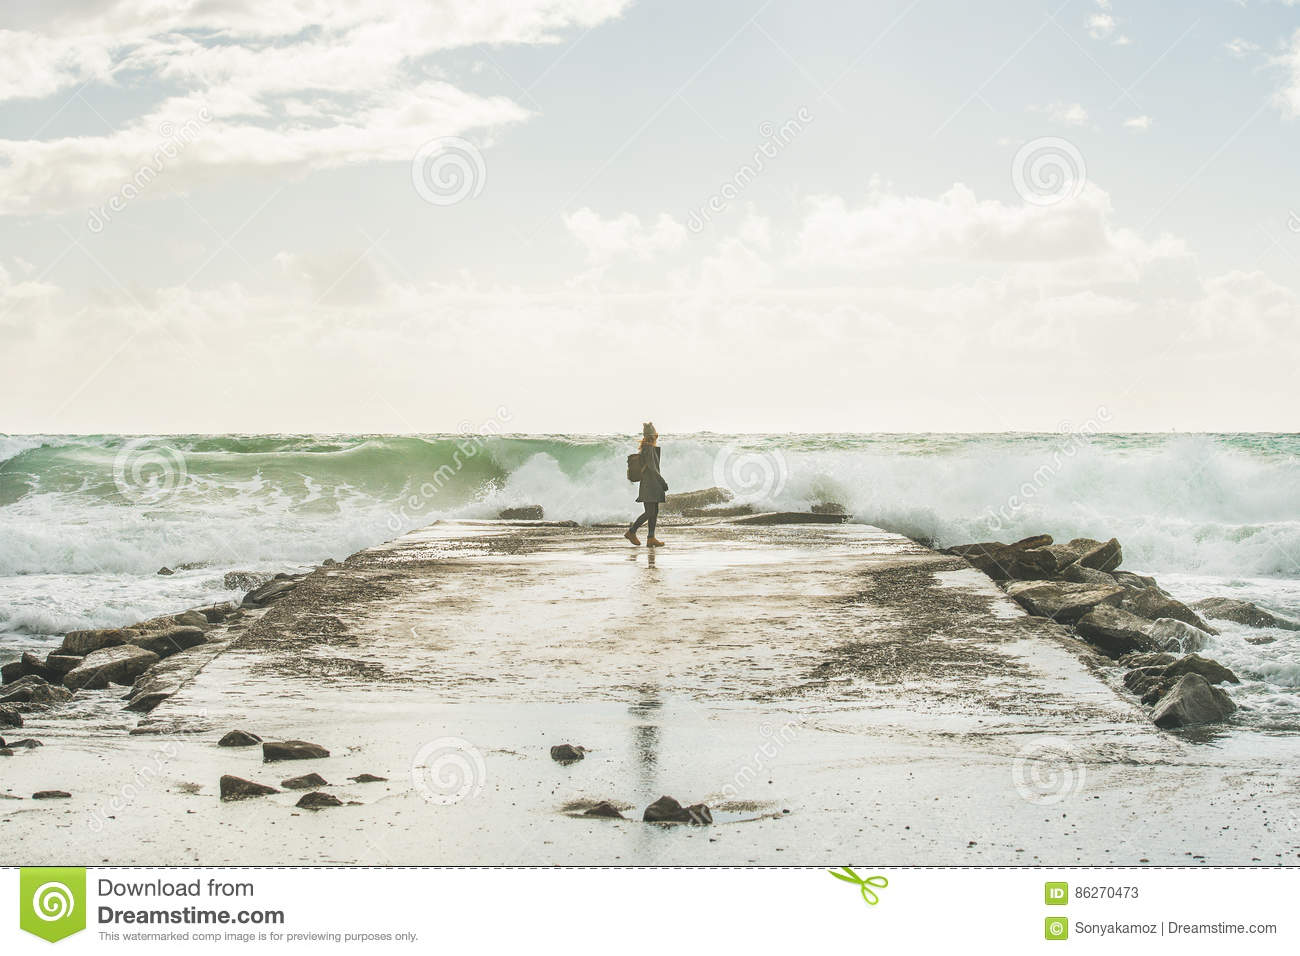 a034efb52a55 Silhouette of young woman walking on pier surrounded by stones and looking  at waves of stormy Mediterranean sea in winter